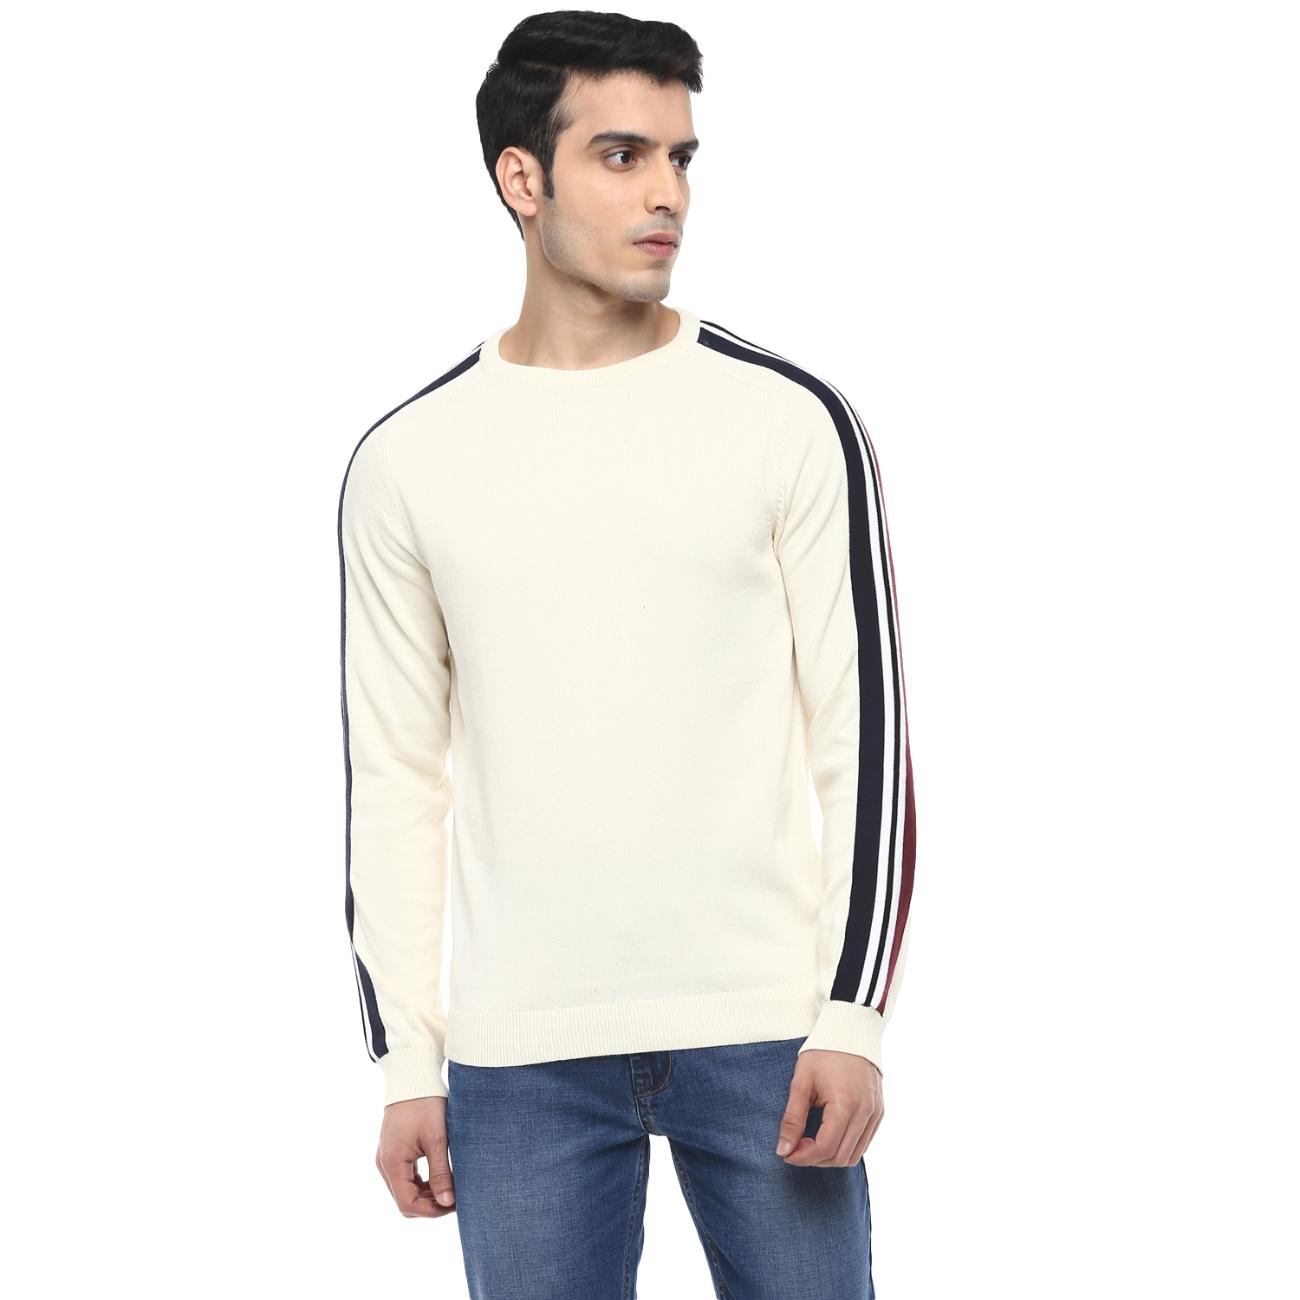 Buy Off-white Casual Sweater Round Neck